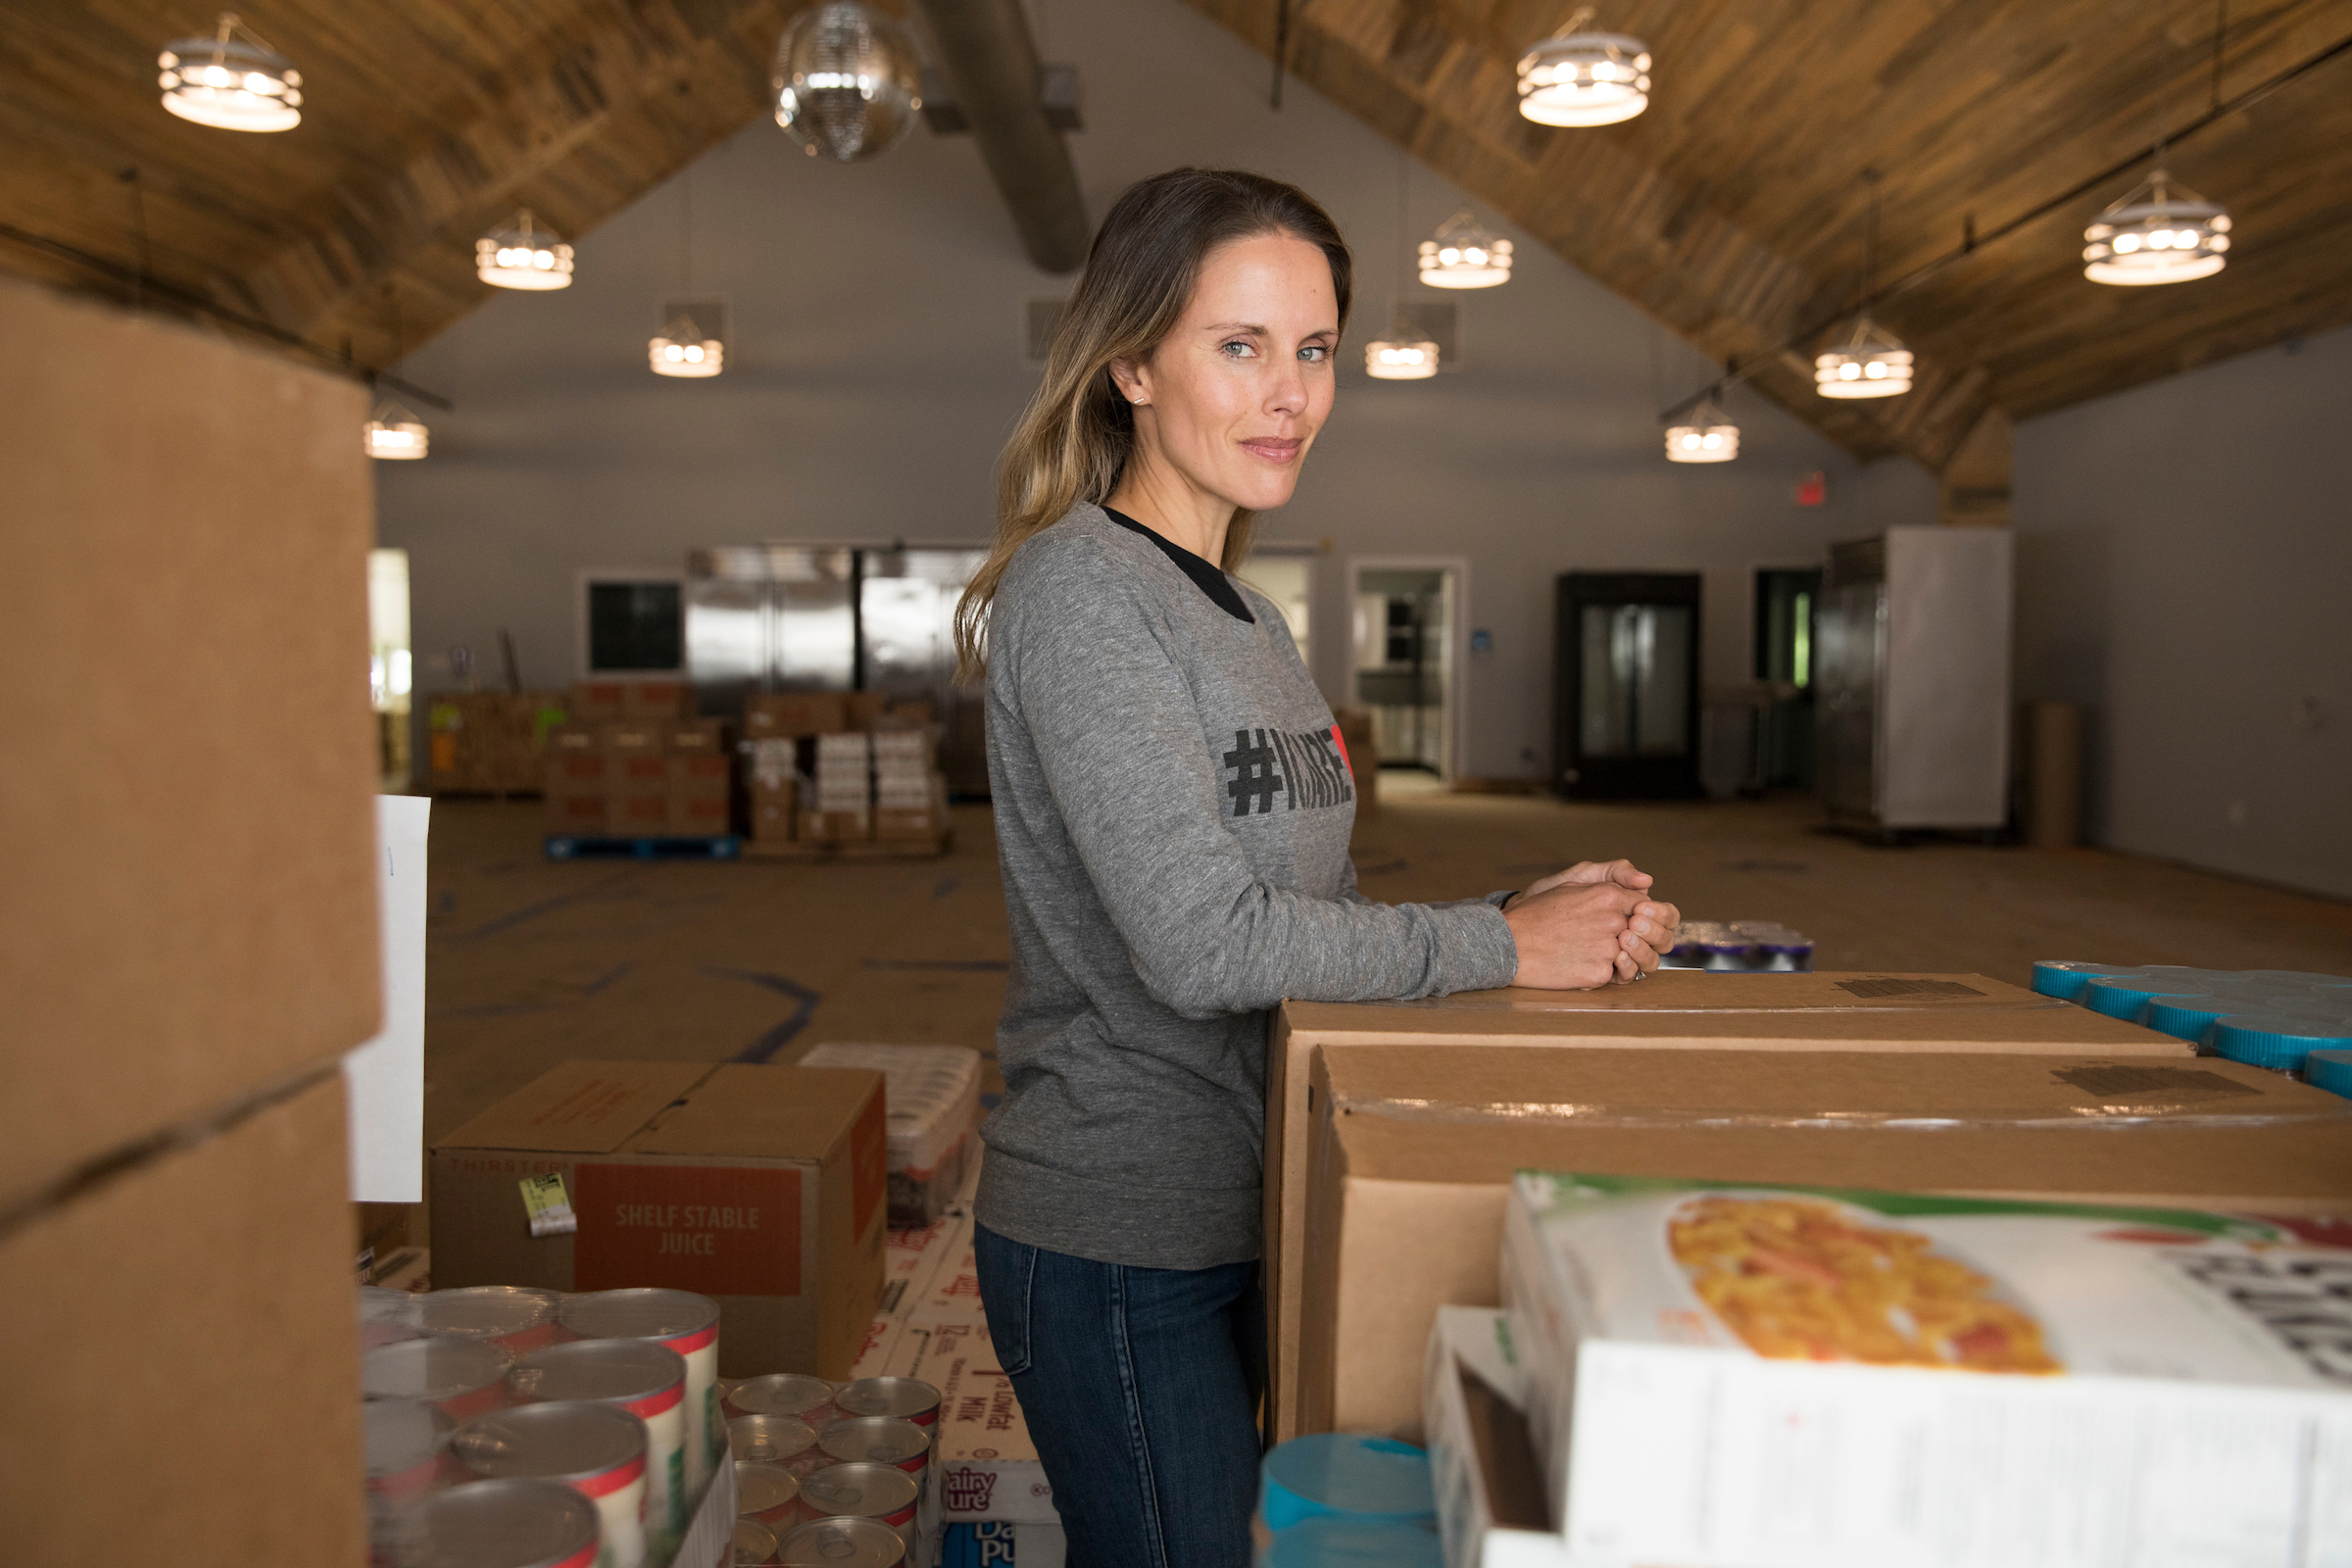 Marit Molin at JBJ Soul Kitchen Food Bank, which partnered with her organization, Hamptons Community Outreach.  LORI HAWKINS